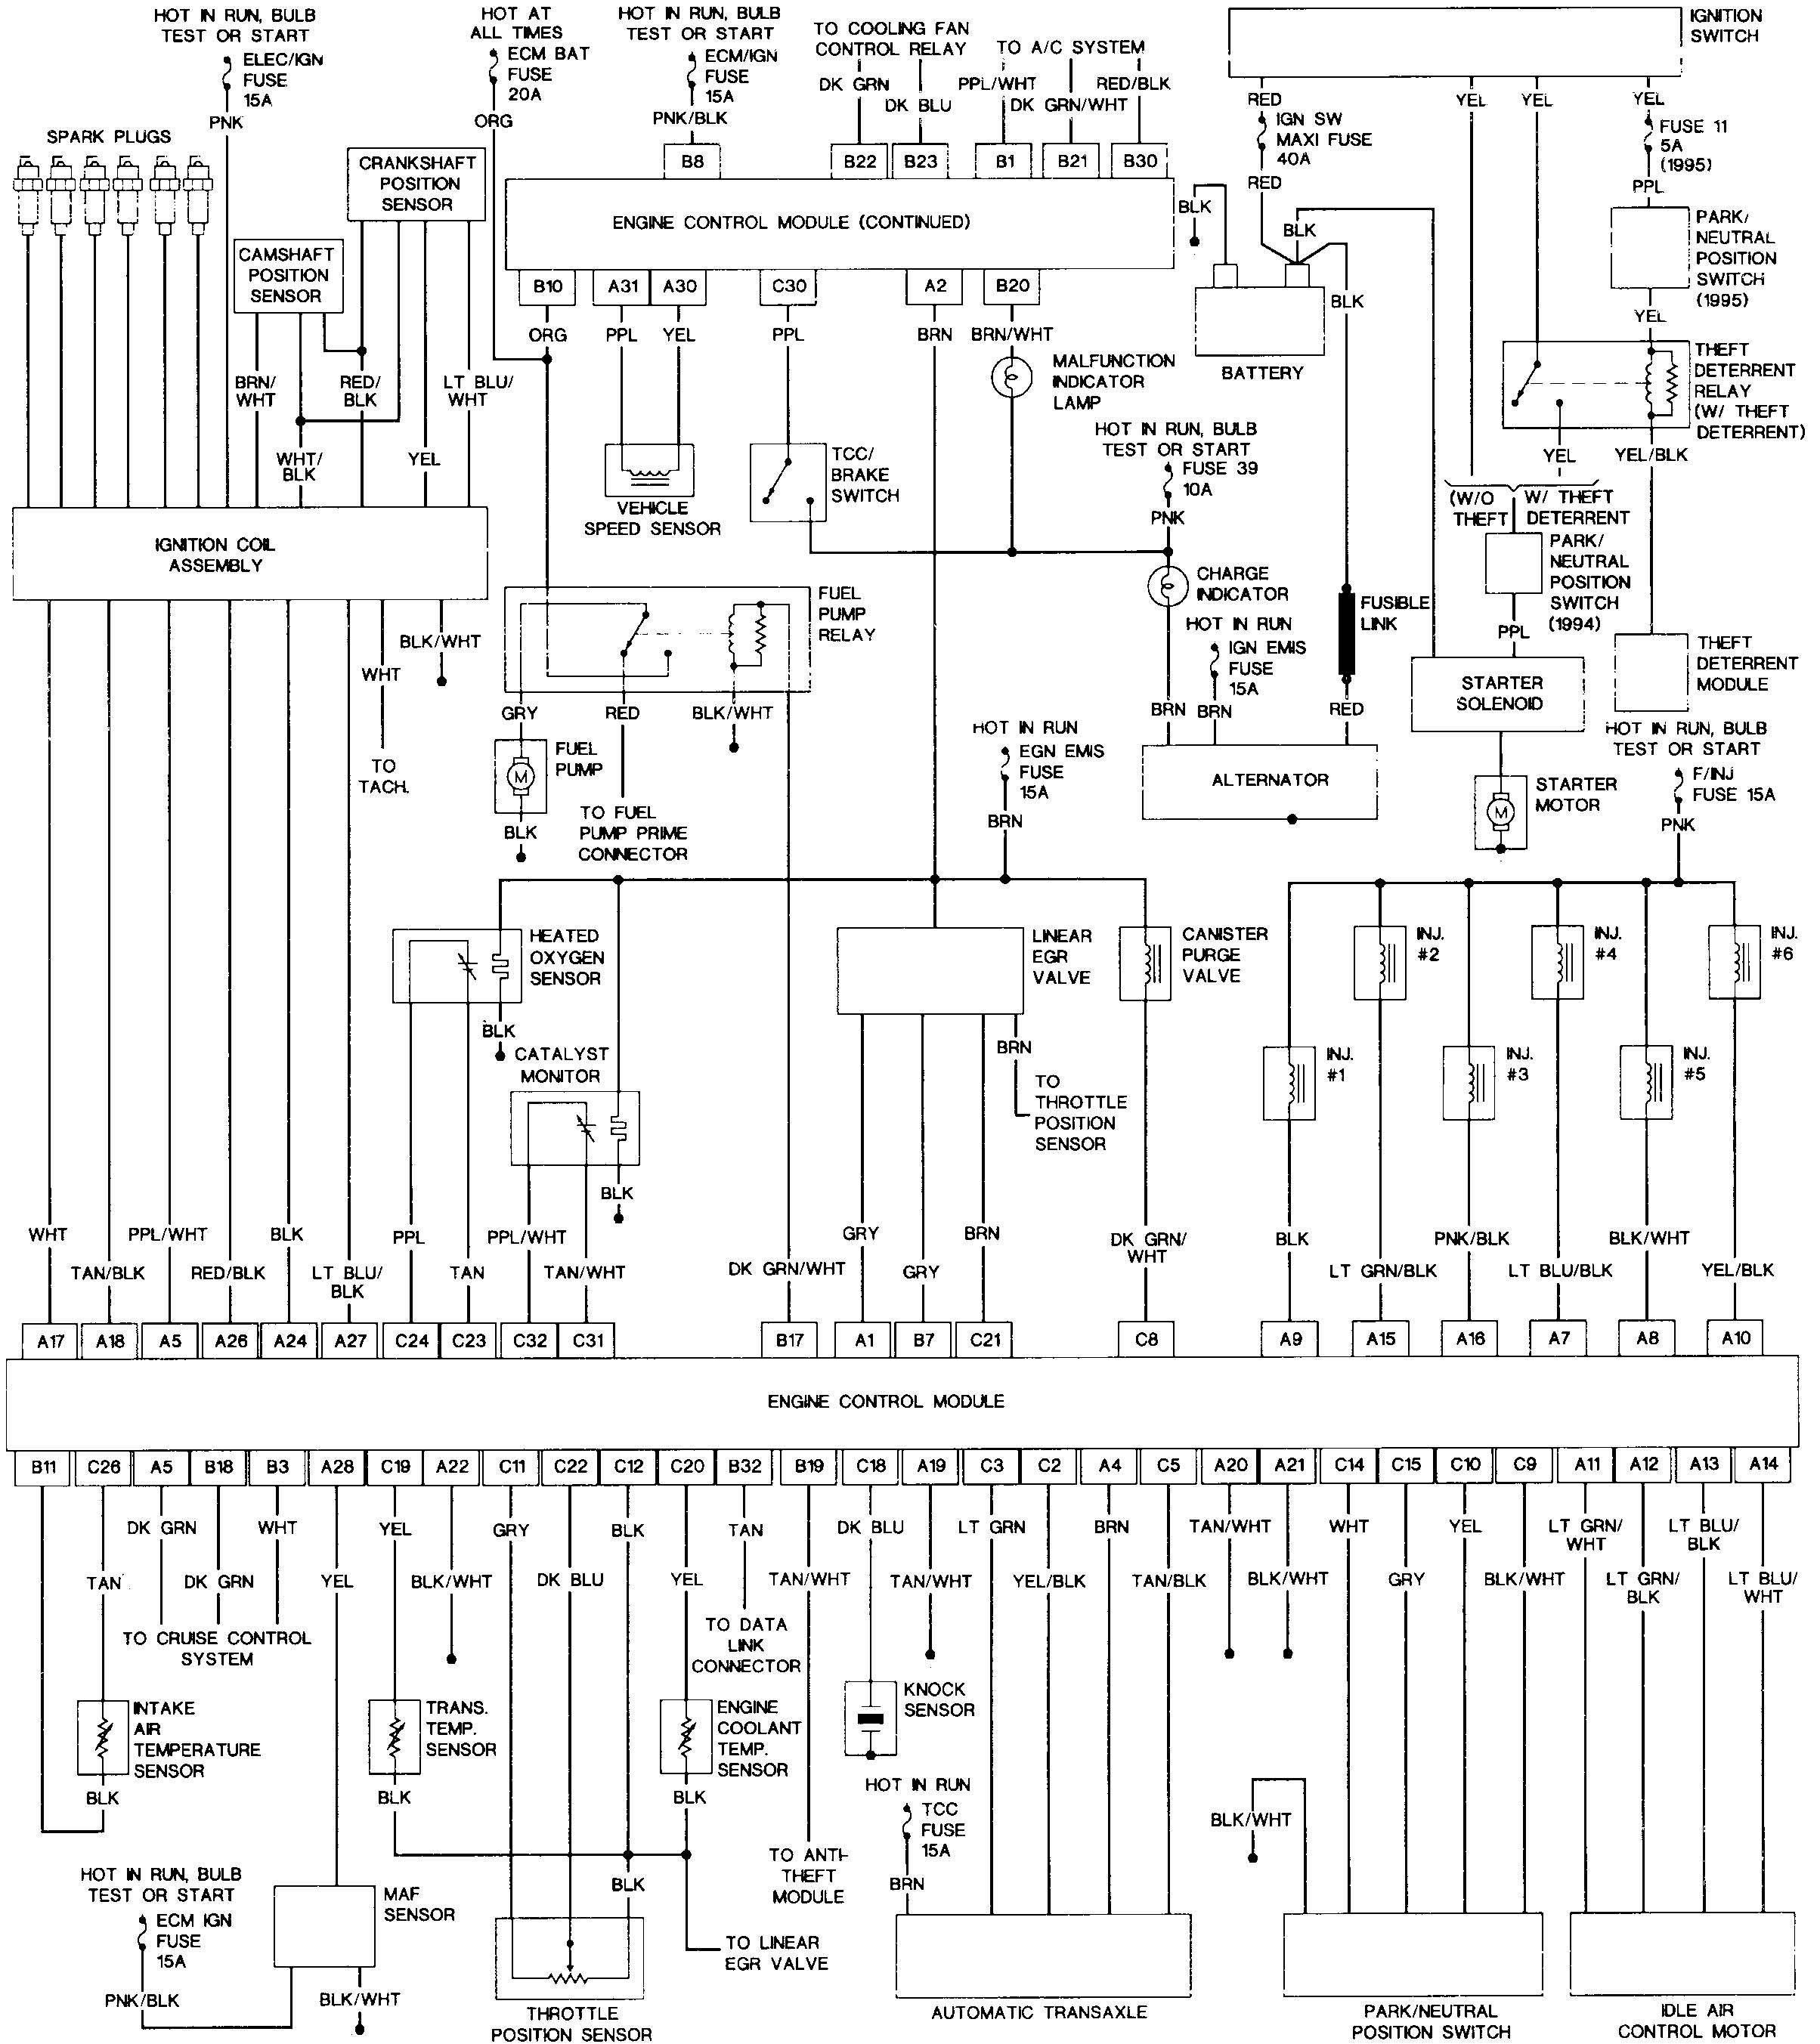 2002 Jeep Grand Cherokee Engine Diagram 2 Unique 2004 Jeep Grand Cherokee Cooling Fan Wiring Diagram Of 2002 Jeep Grand Cherokee Engine Diagram 2